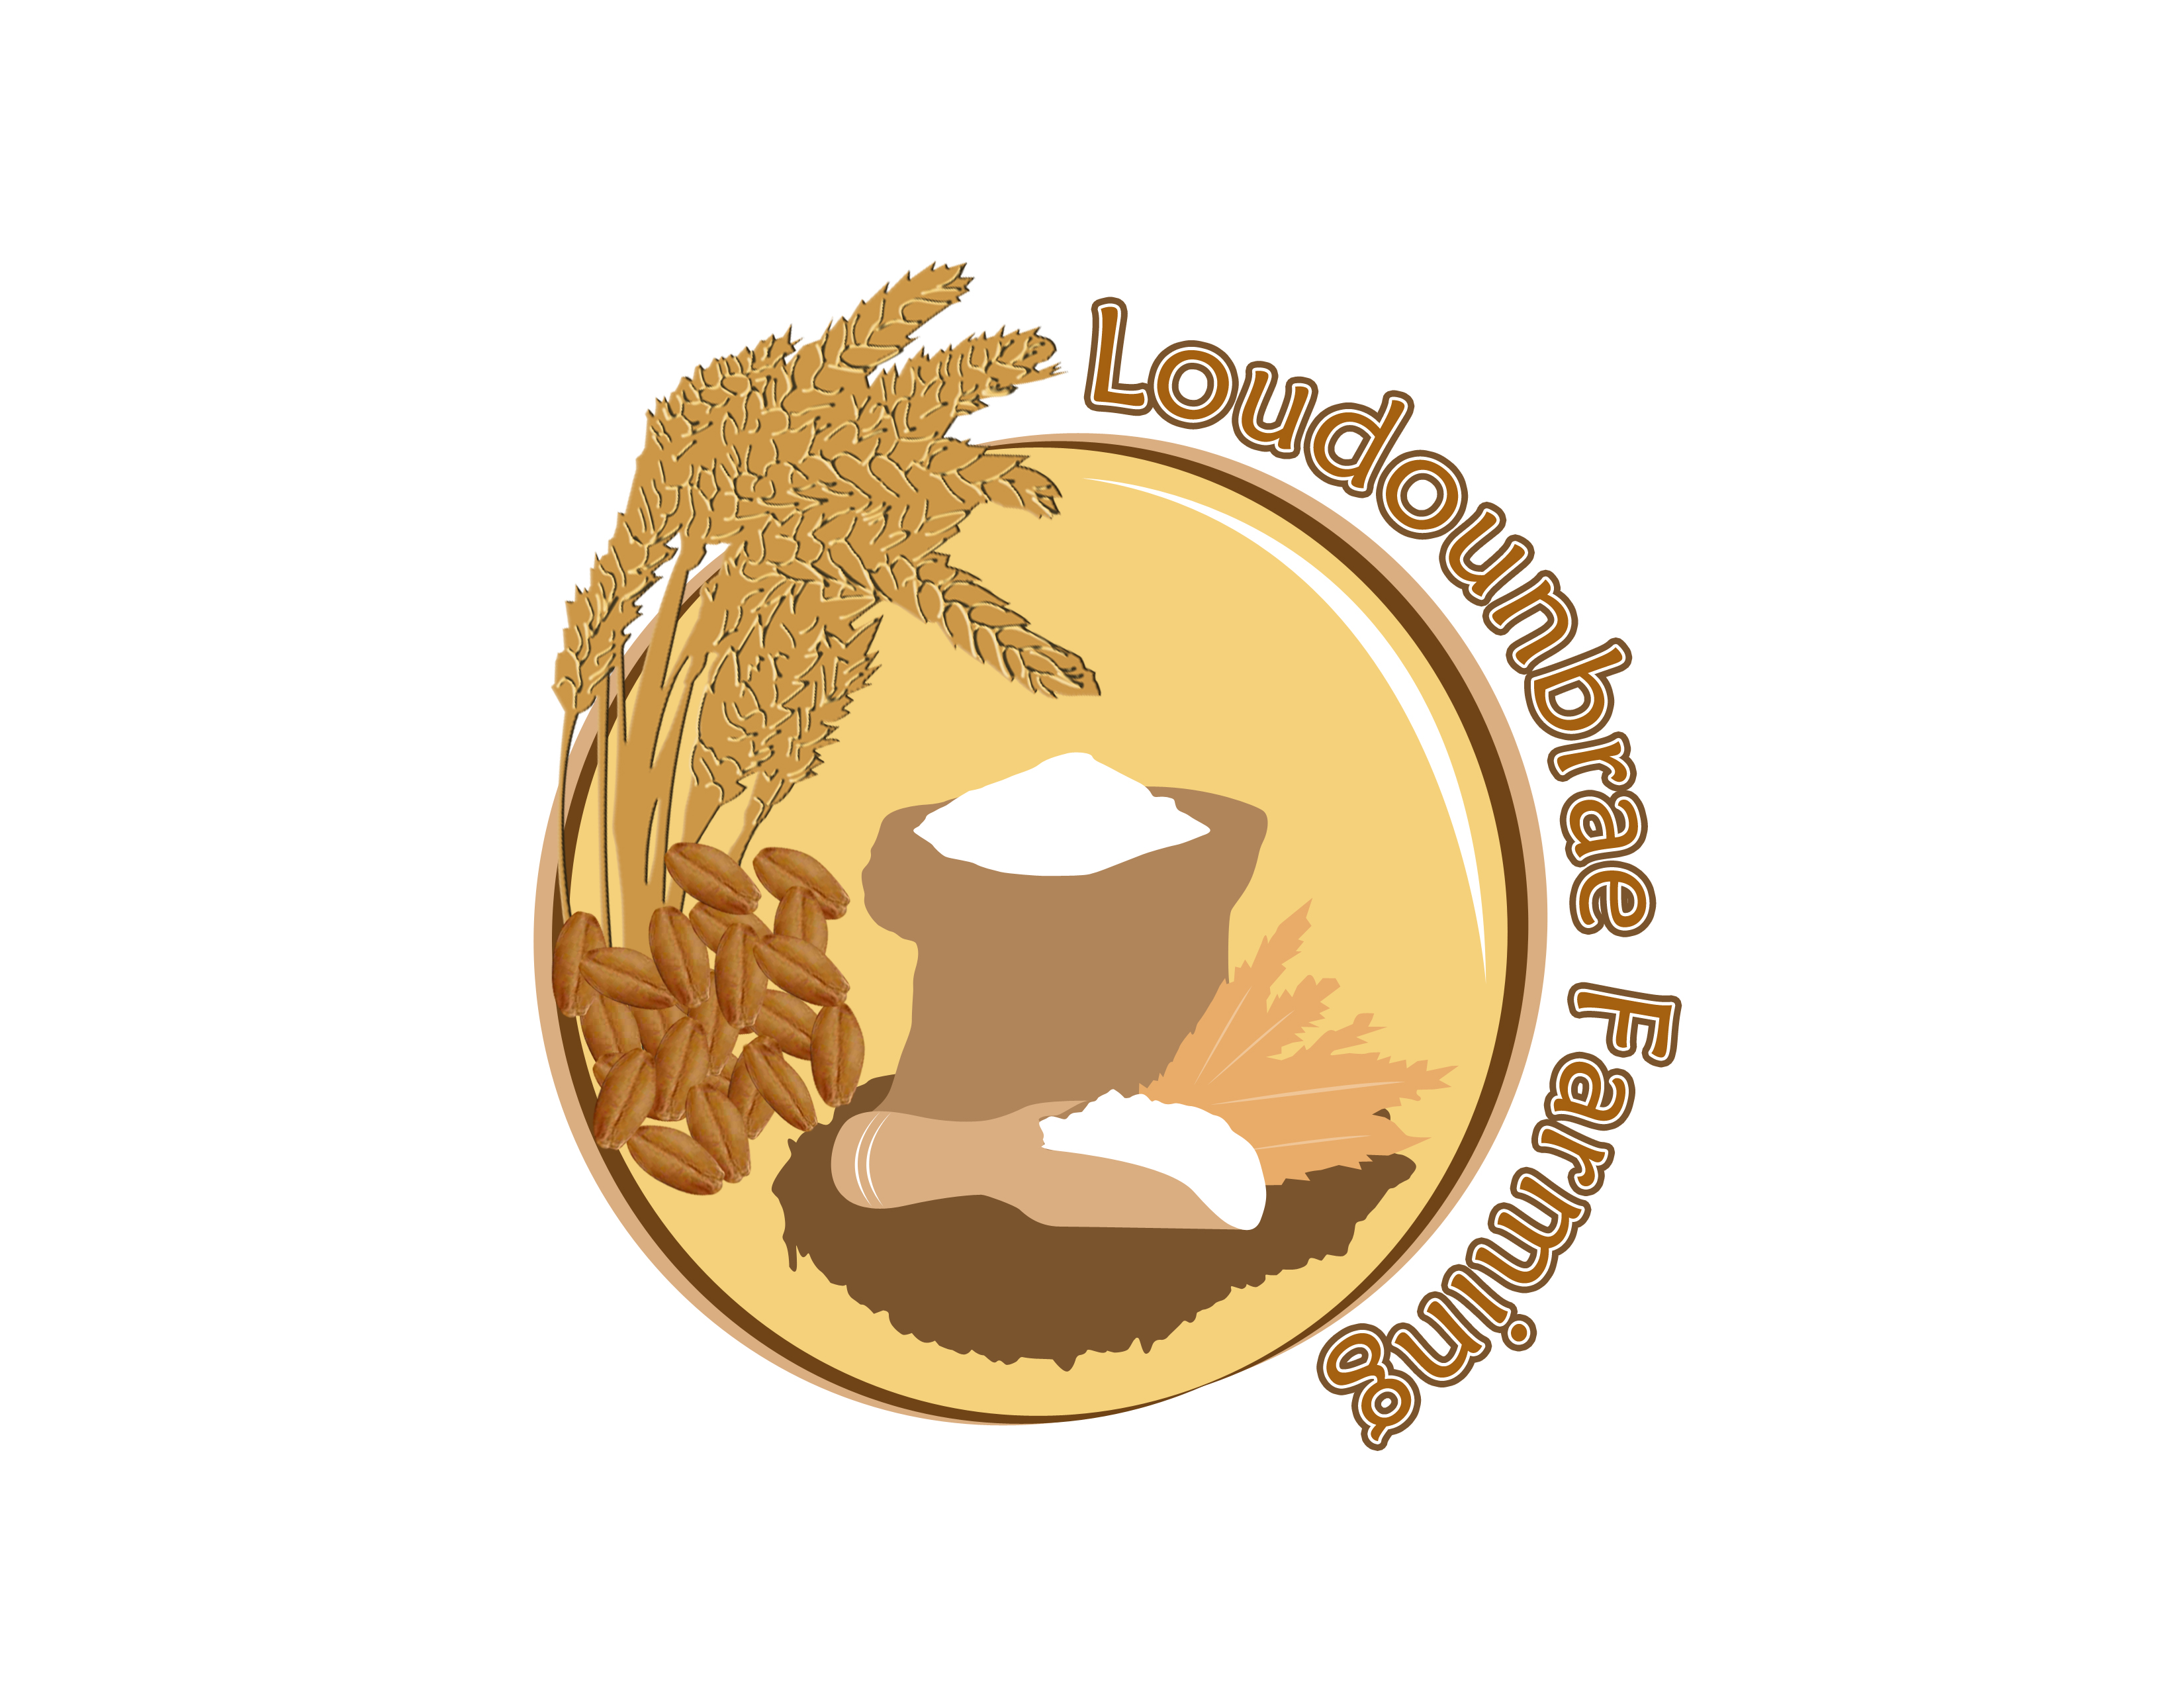 Logo Design by Jo Cres Jao - Entry No. 62 in the Logo Design Contest Creative Logo Design for Loudounbrae Farming.